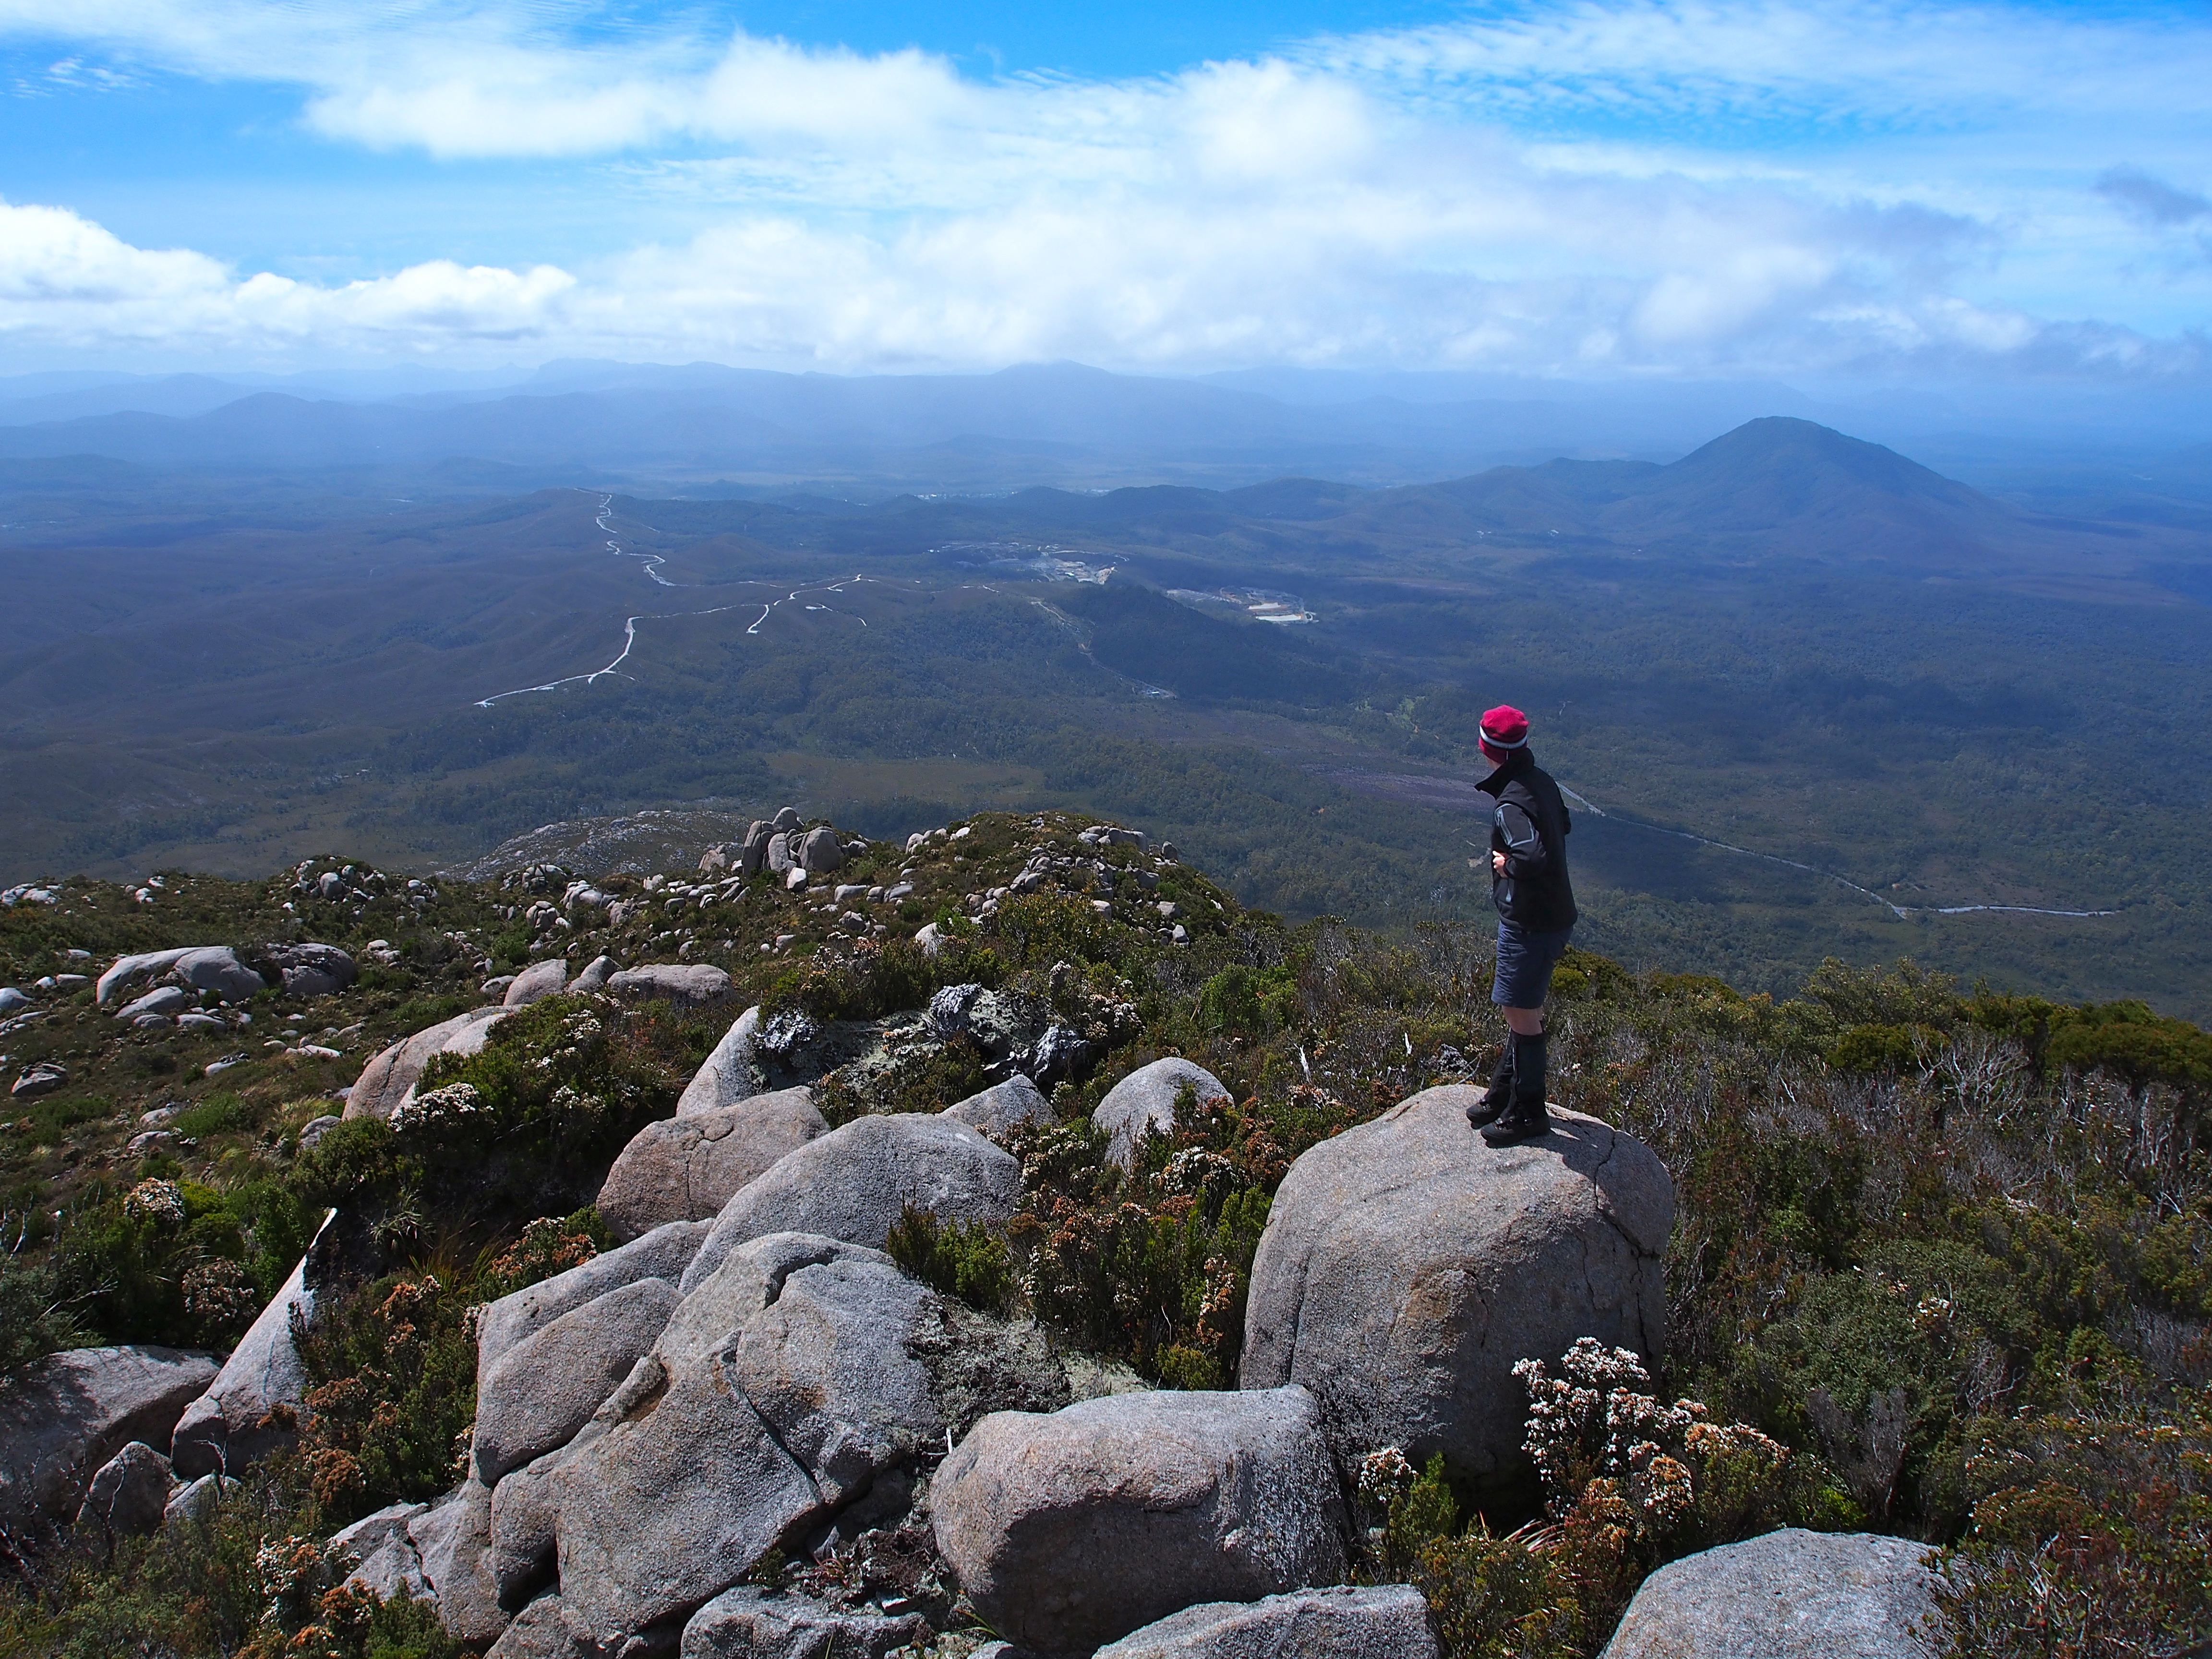 Checking out the mountains, Zeehan on the right